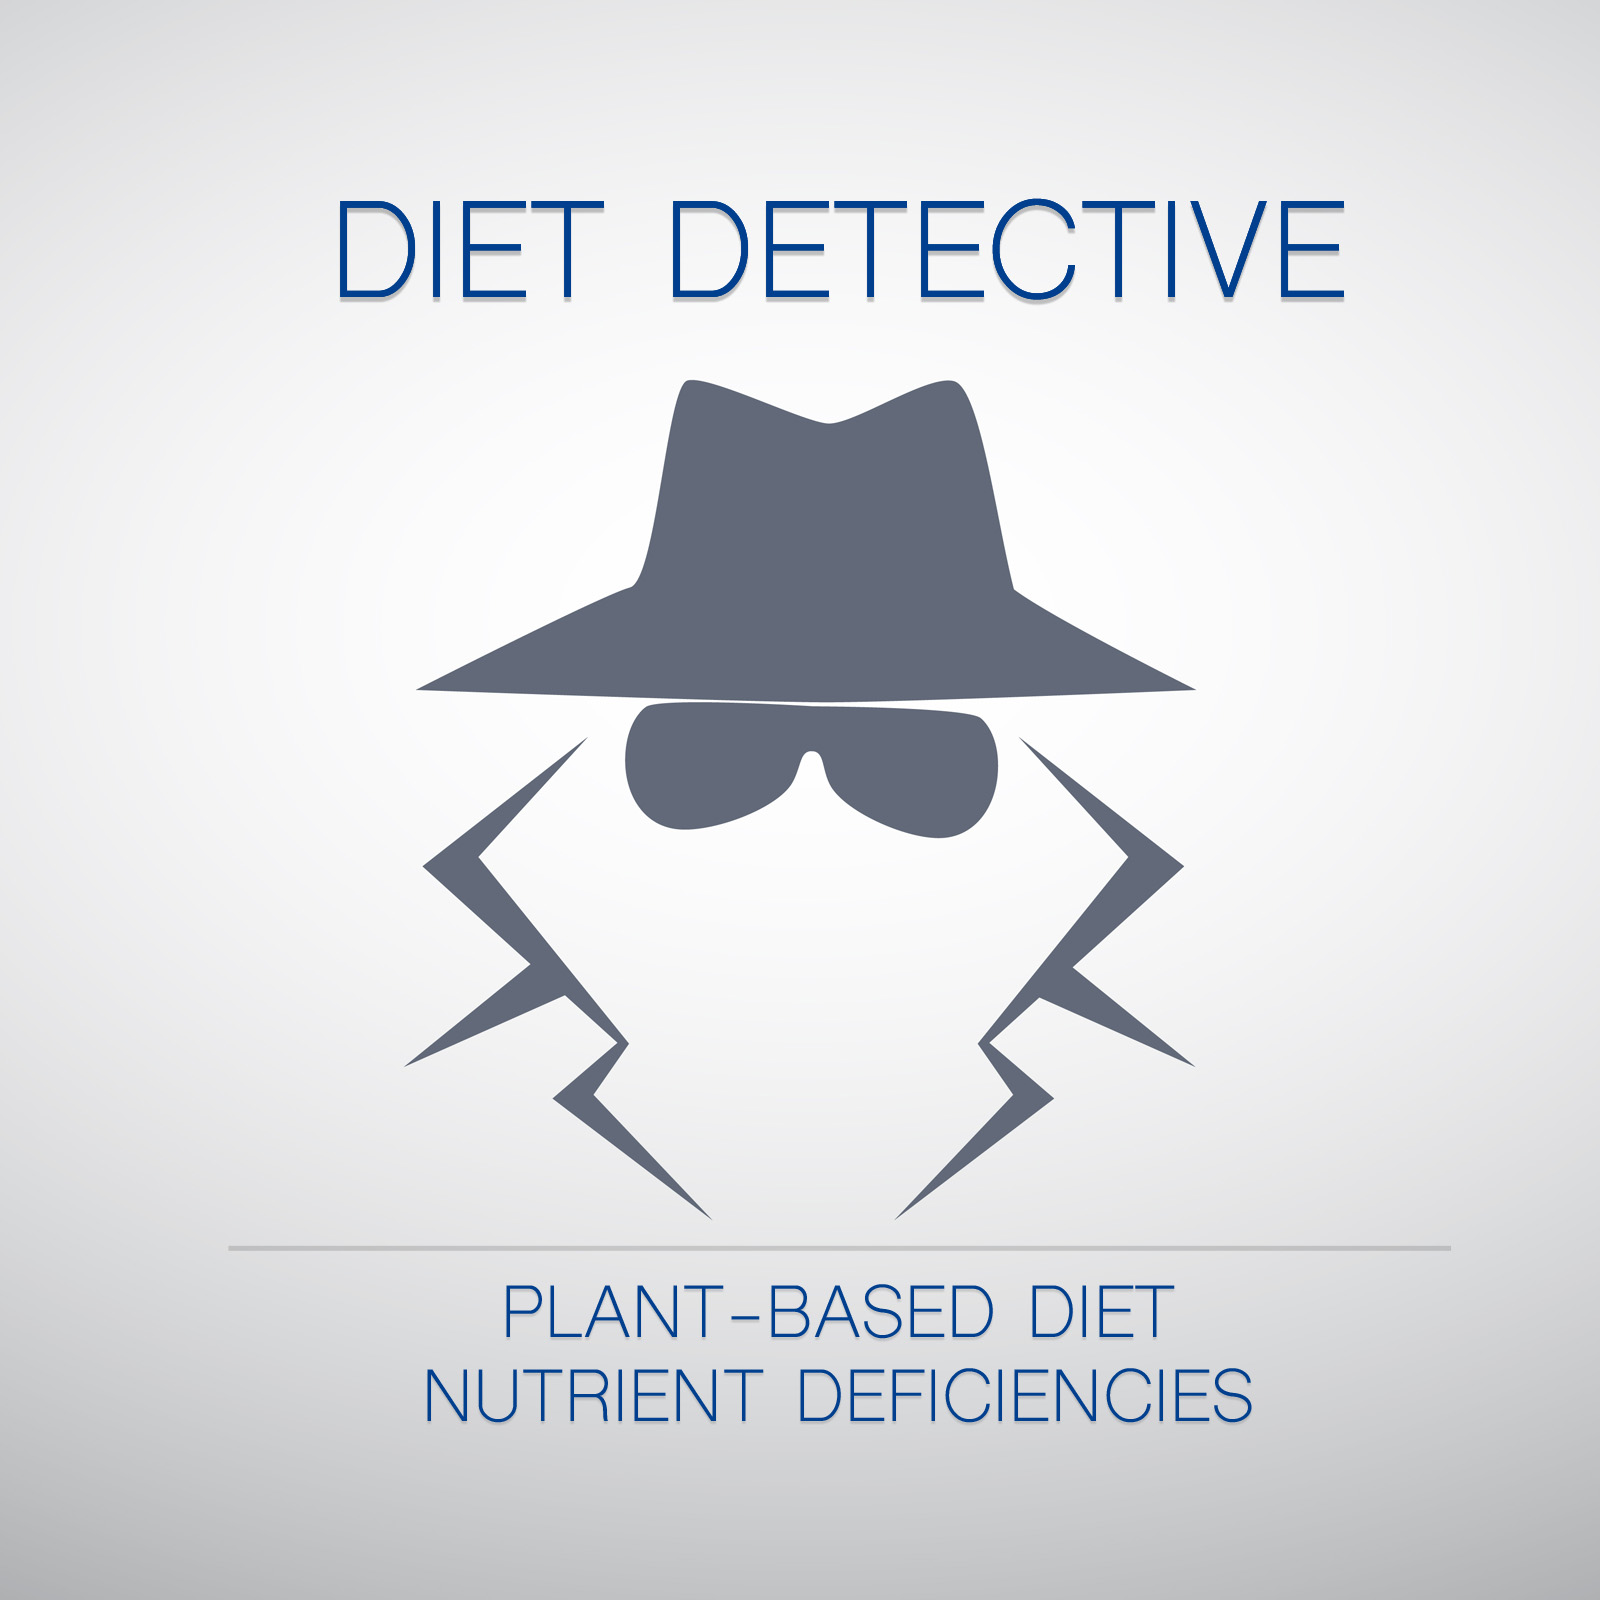 Diet Detective: Plant-based Diet Nutrient Deficiencies